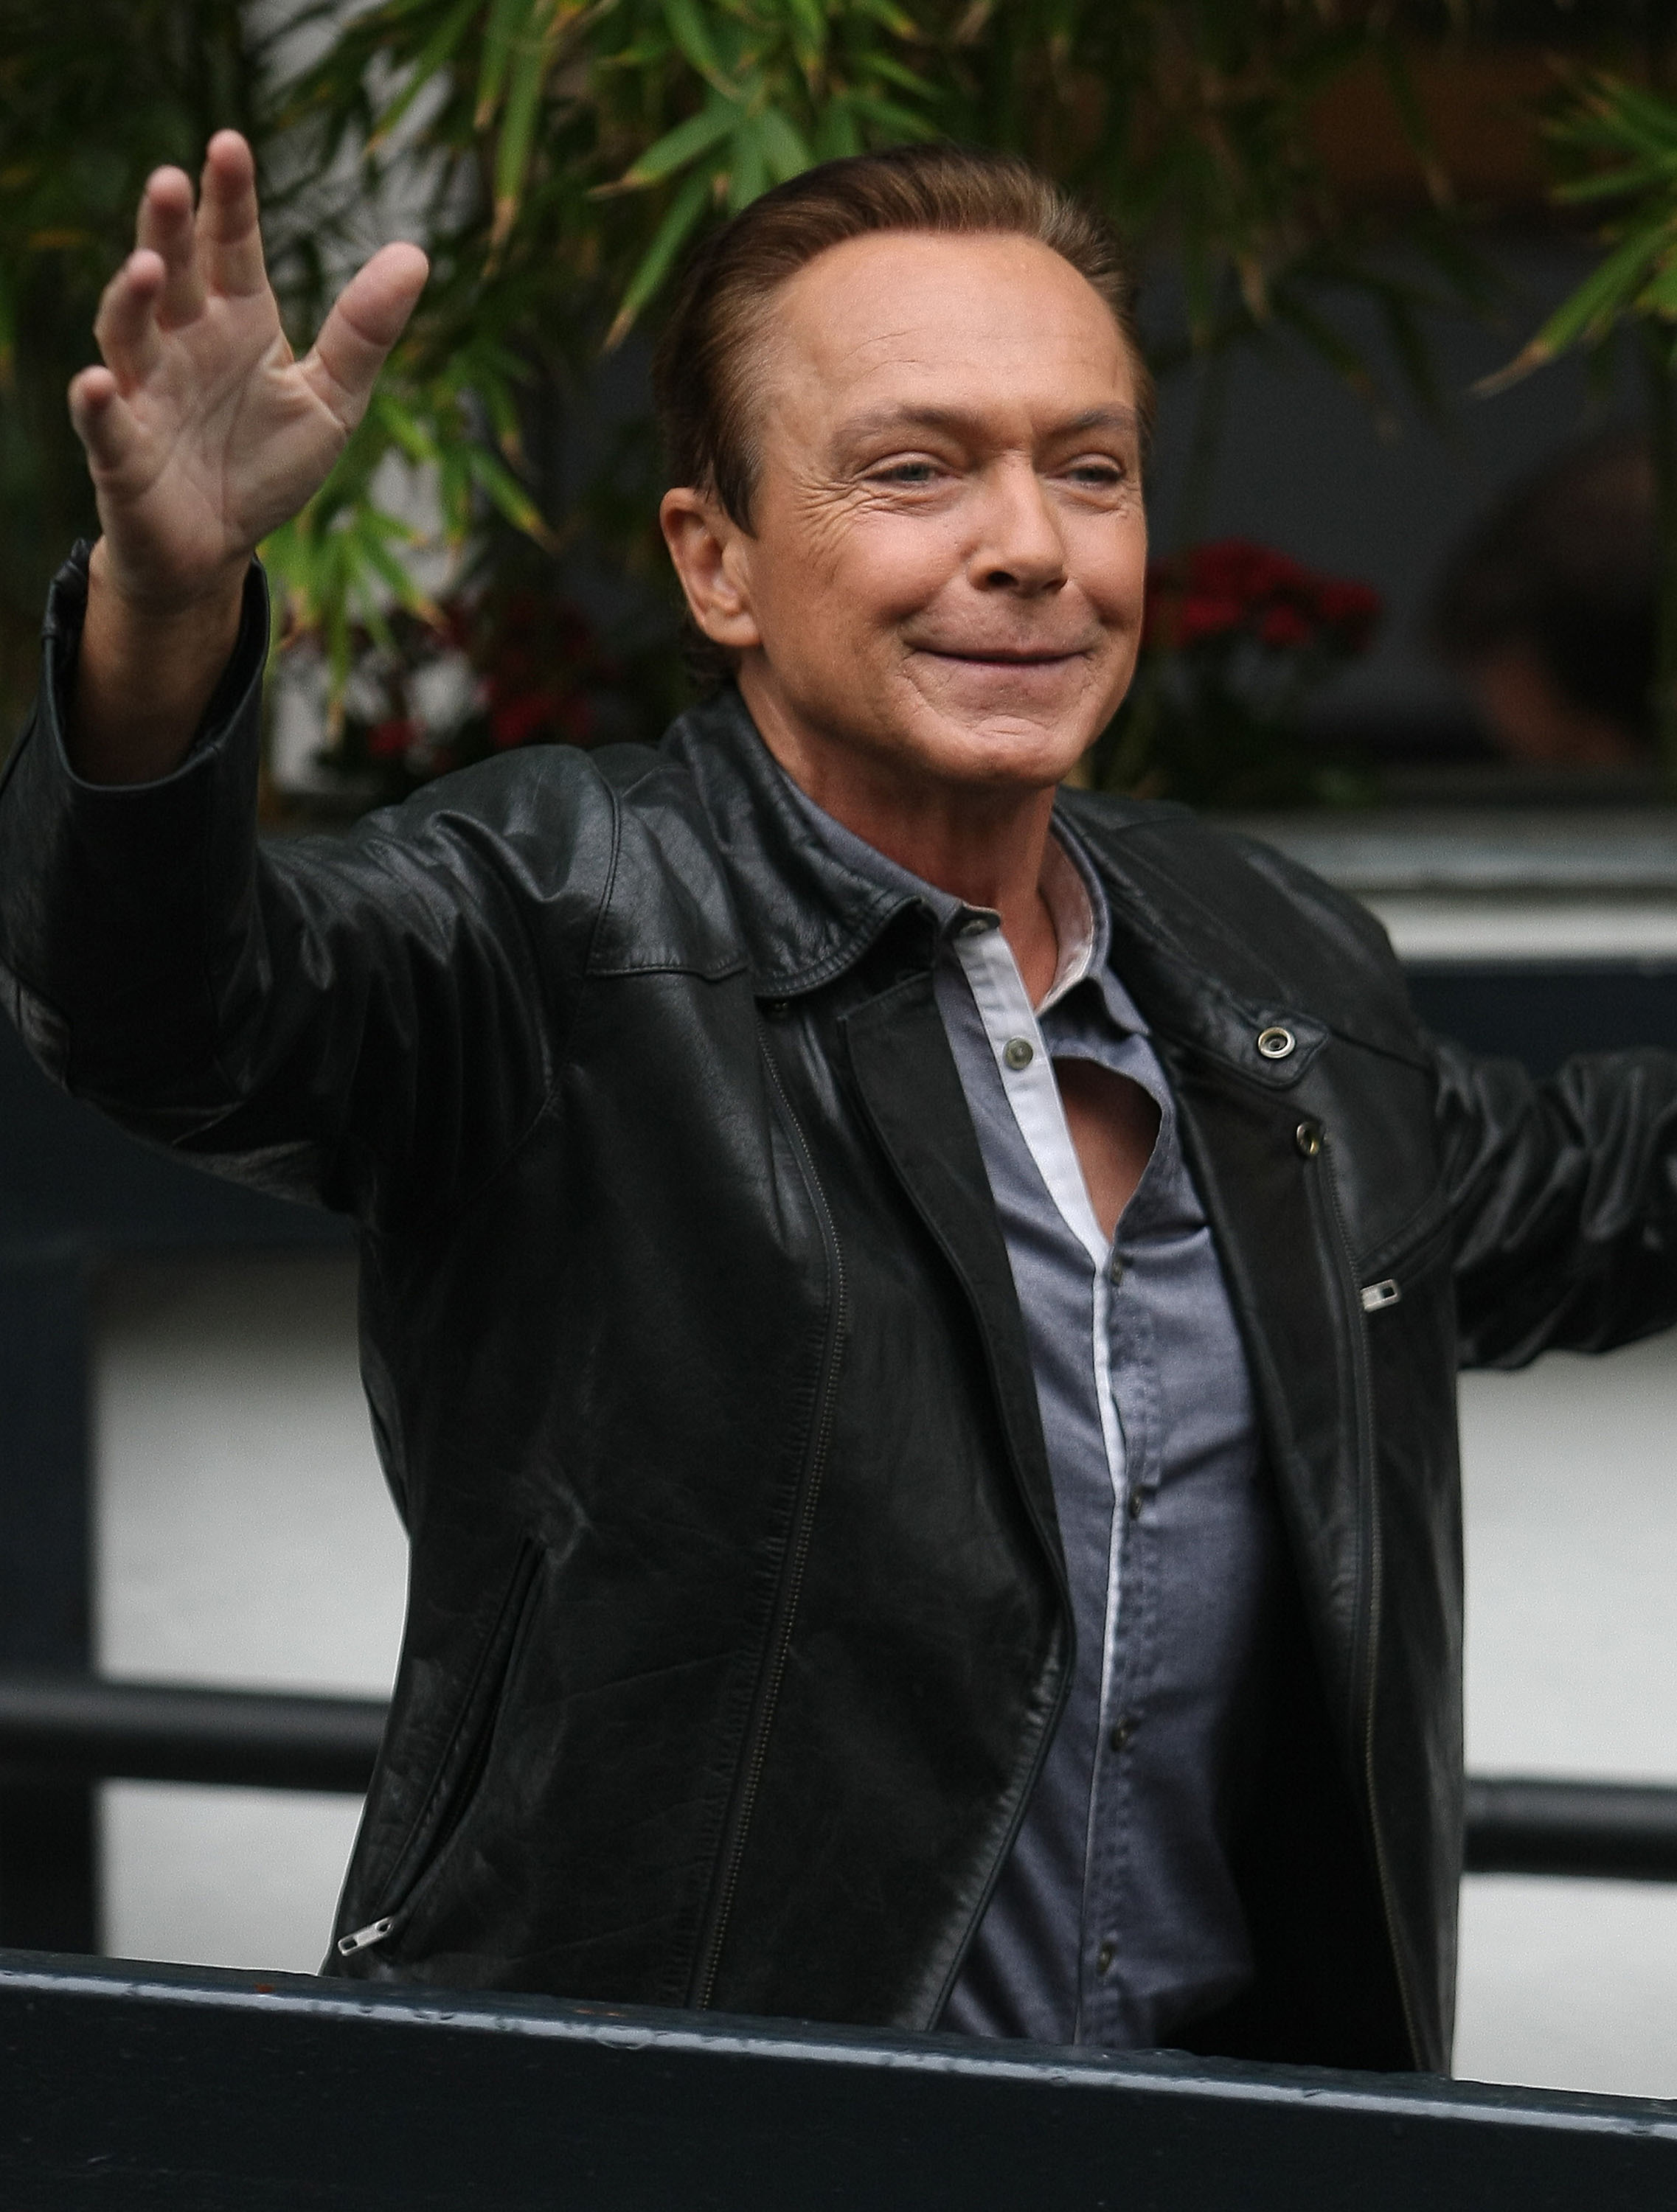 David Cassidy                  at the ITV studios                  London, England - 03.05.12                                    Featuring: David Cassidy                  Where: London, United Kingdom                  When: 03 May 2012                  Credit: WENN